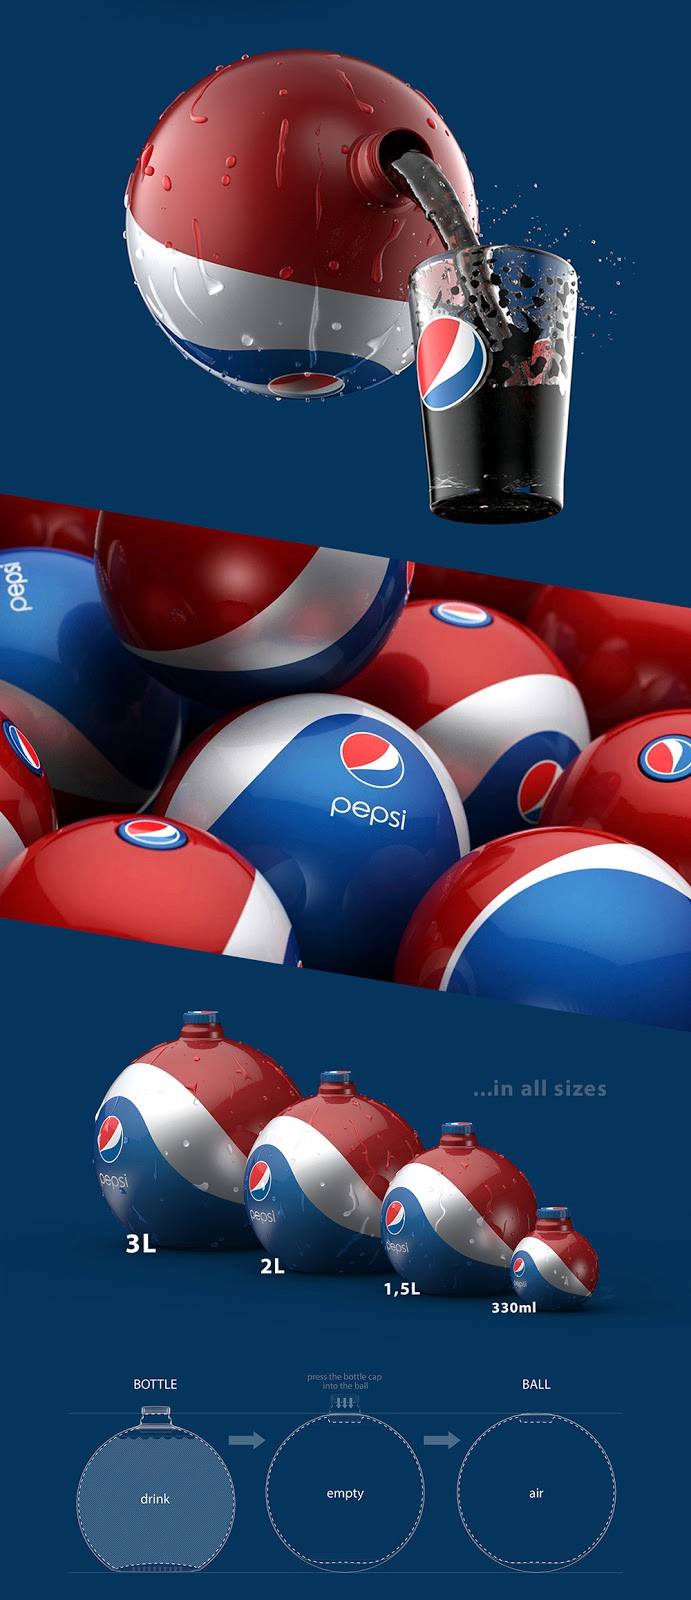 Pepsi_RubberBall_04_BottlePackaging